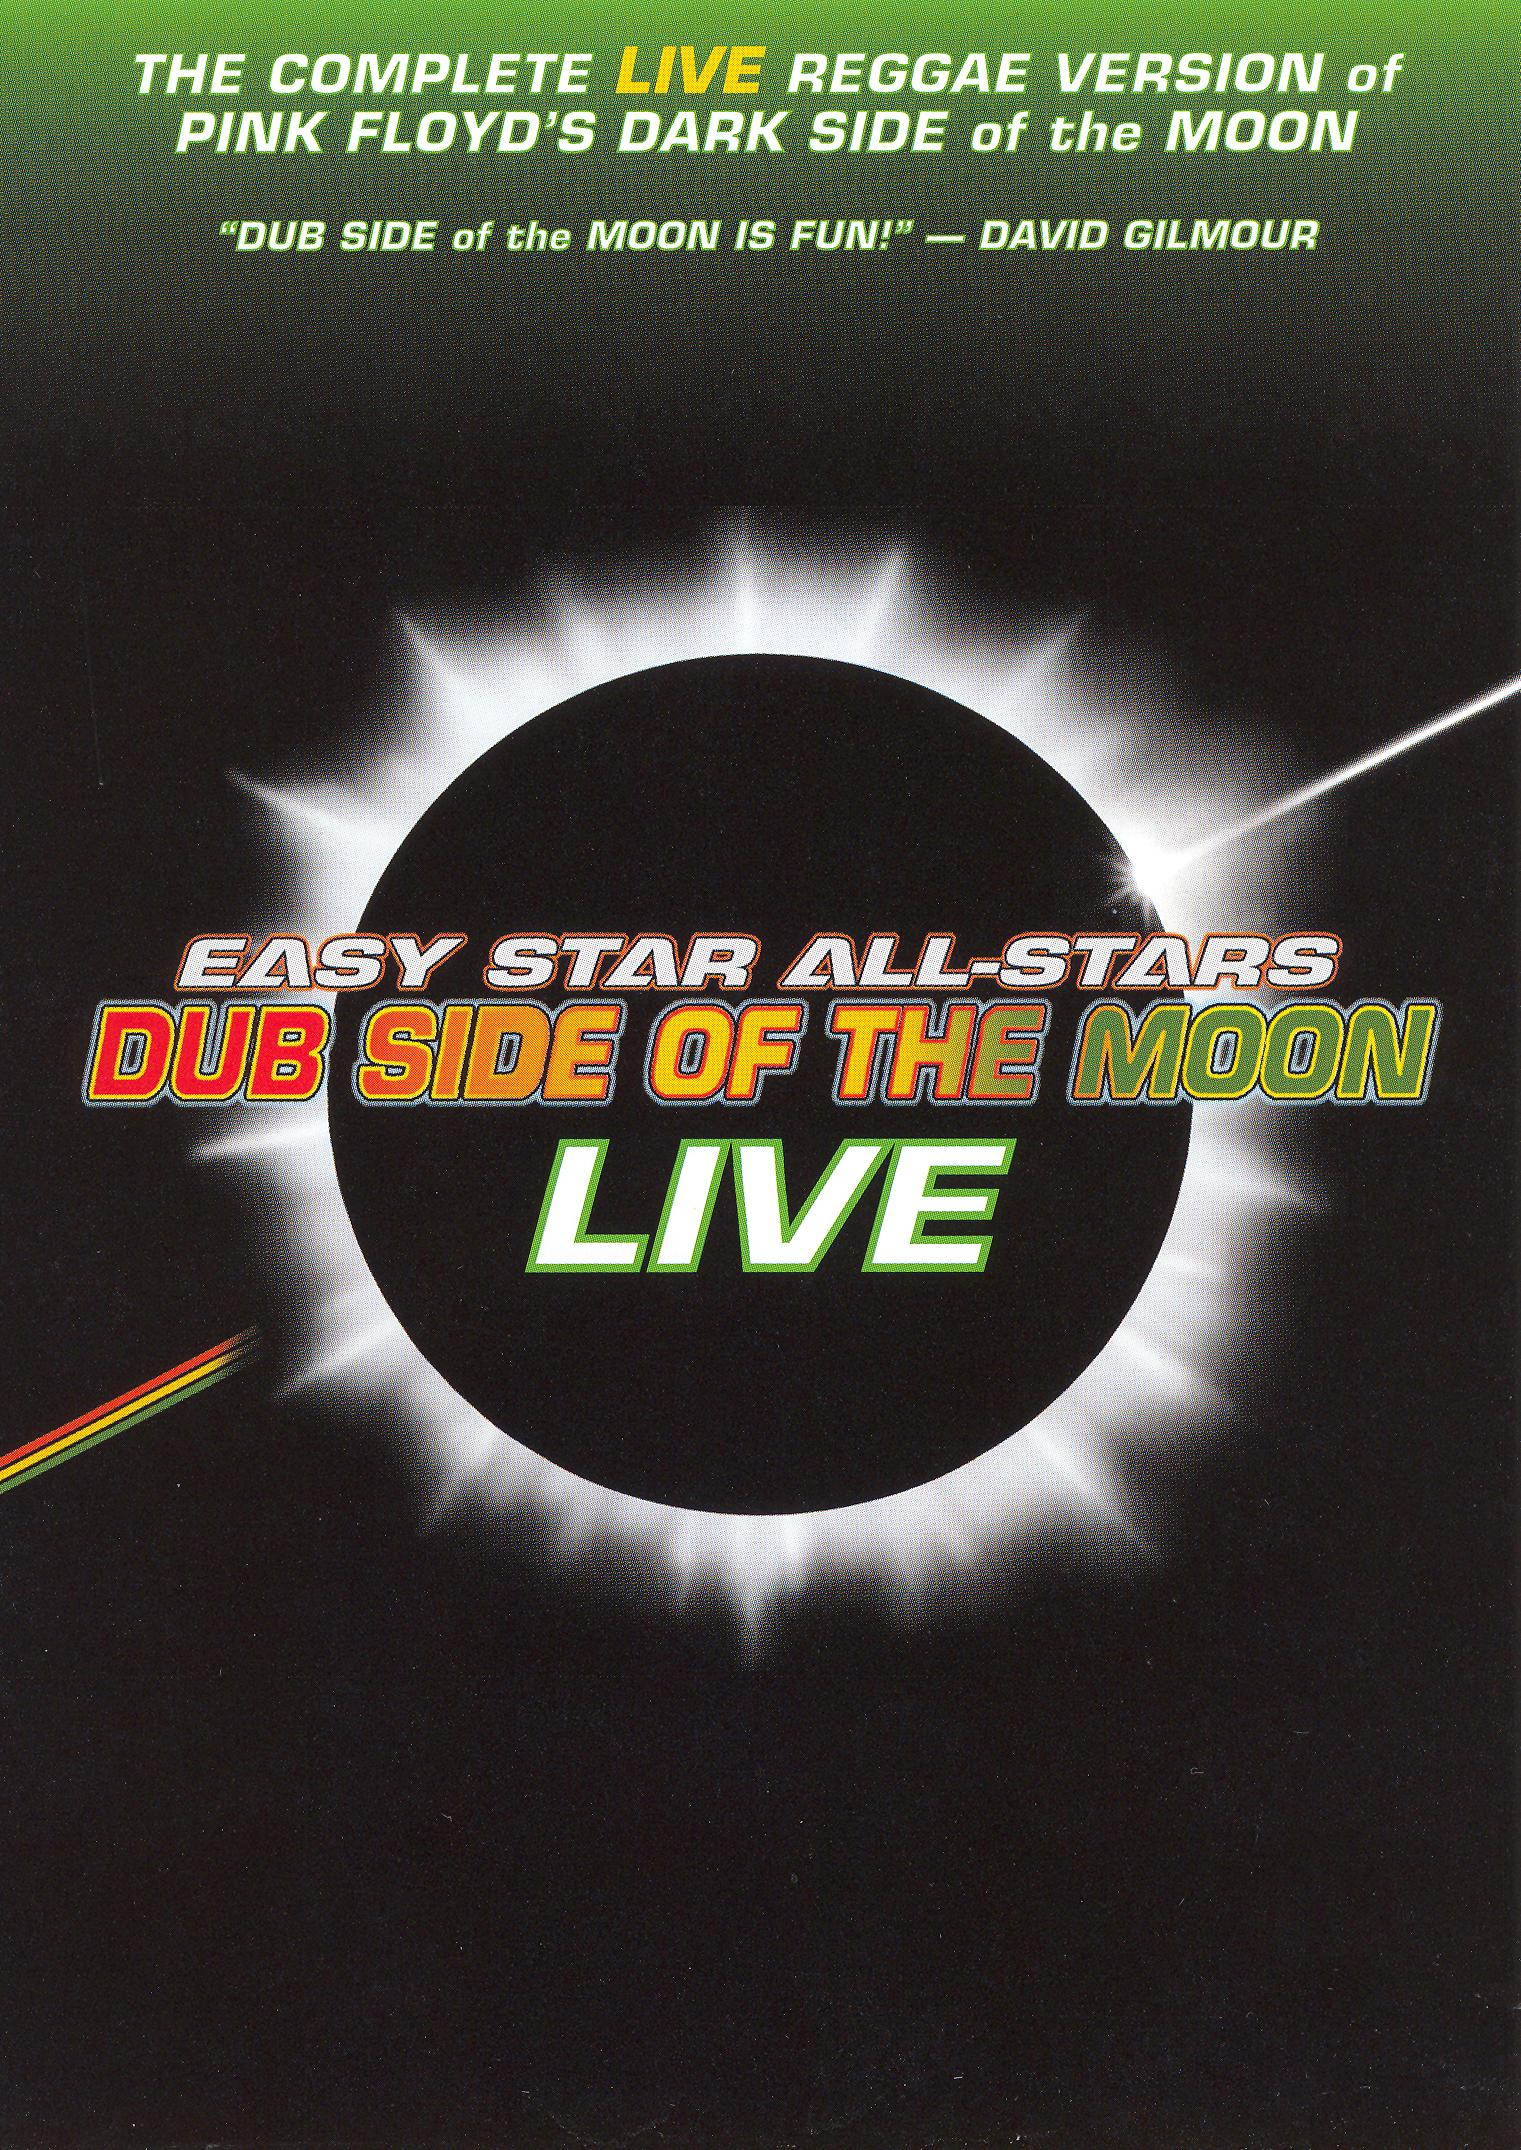 Easy Star All-Stars: Dub Side of the Moon Live